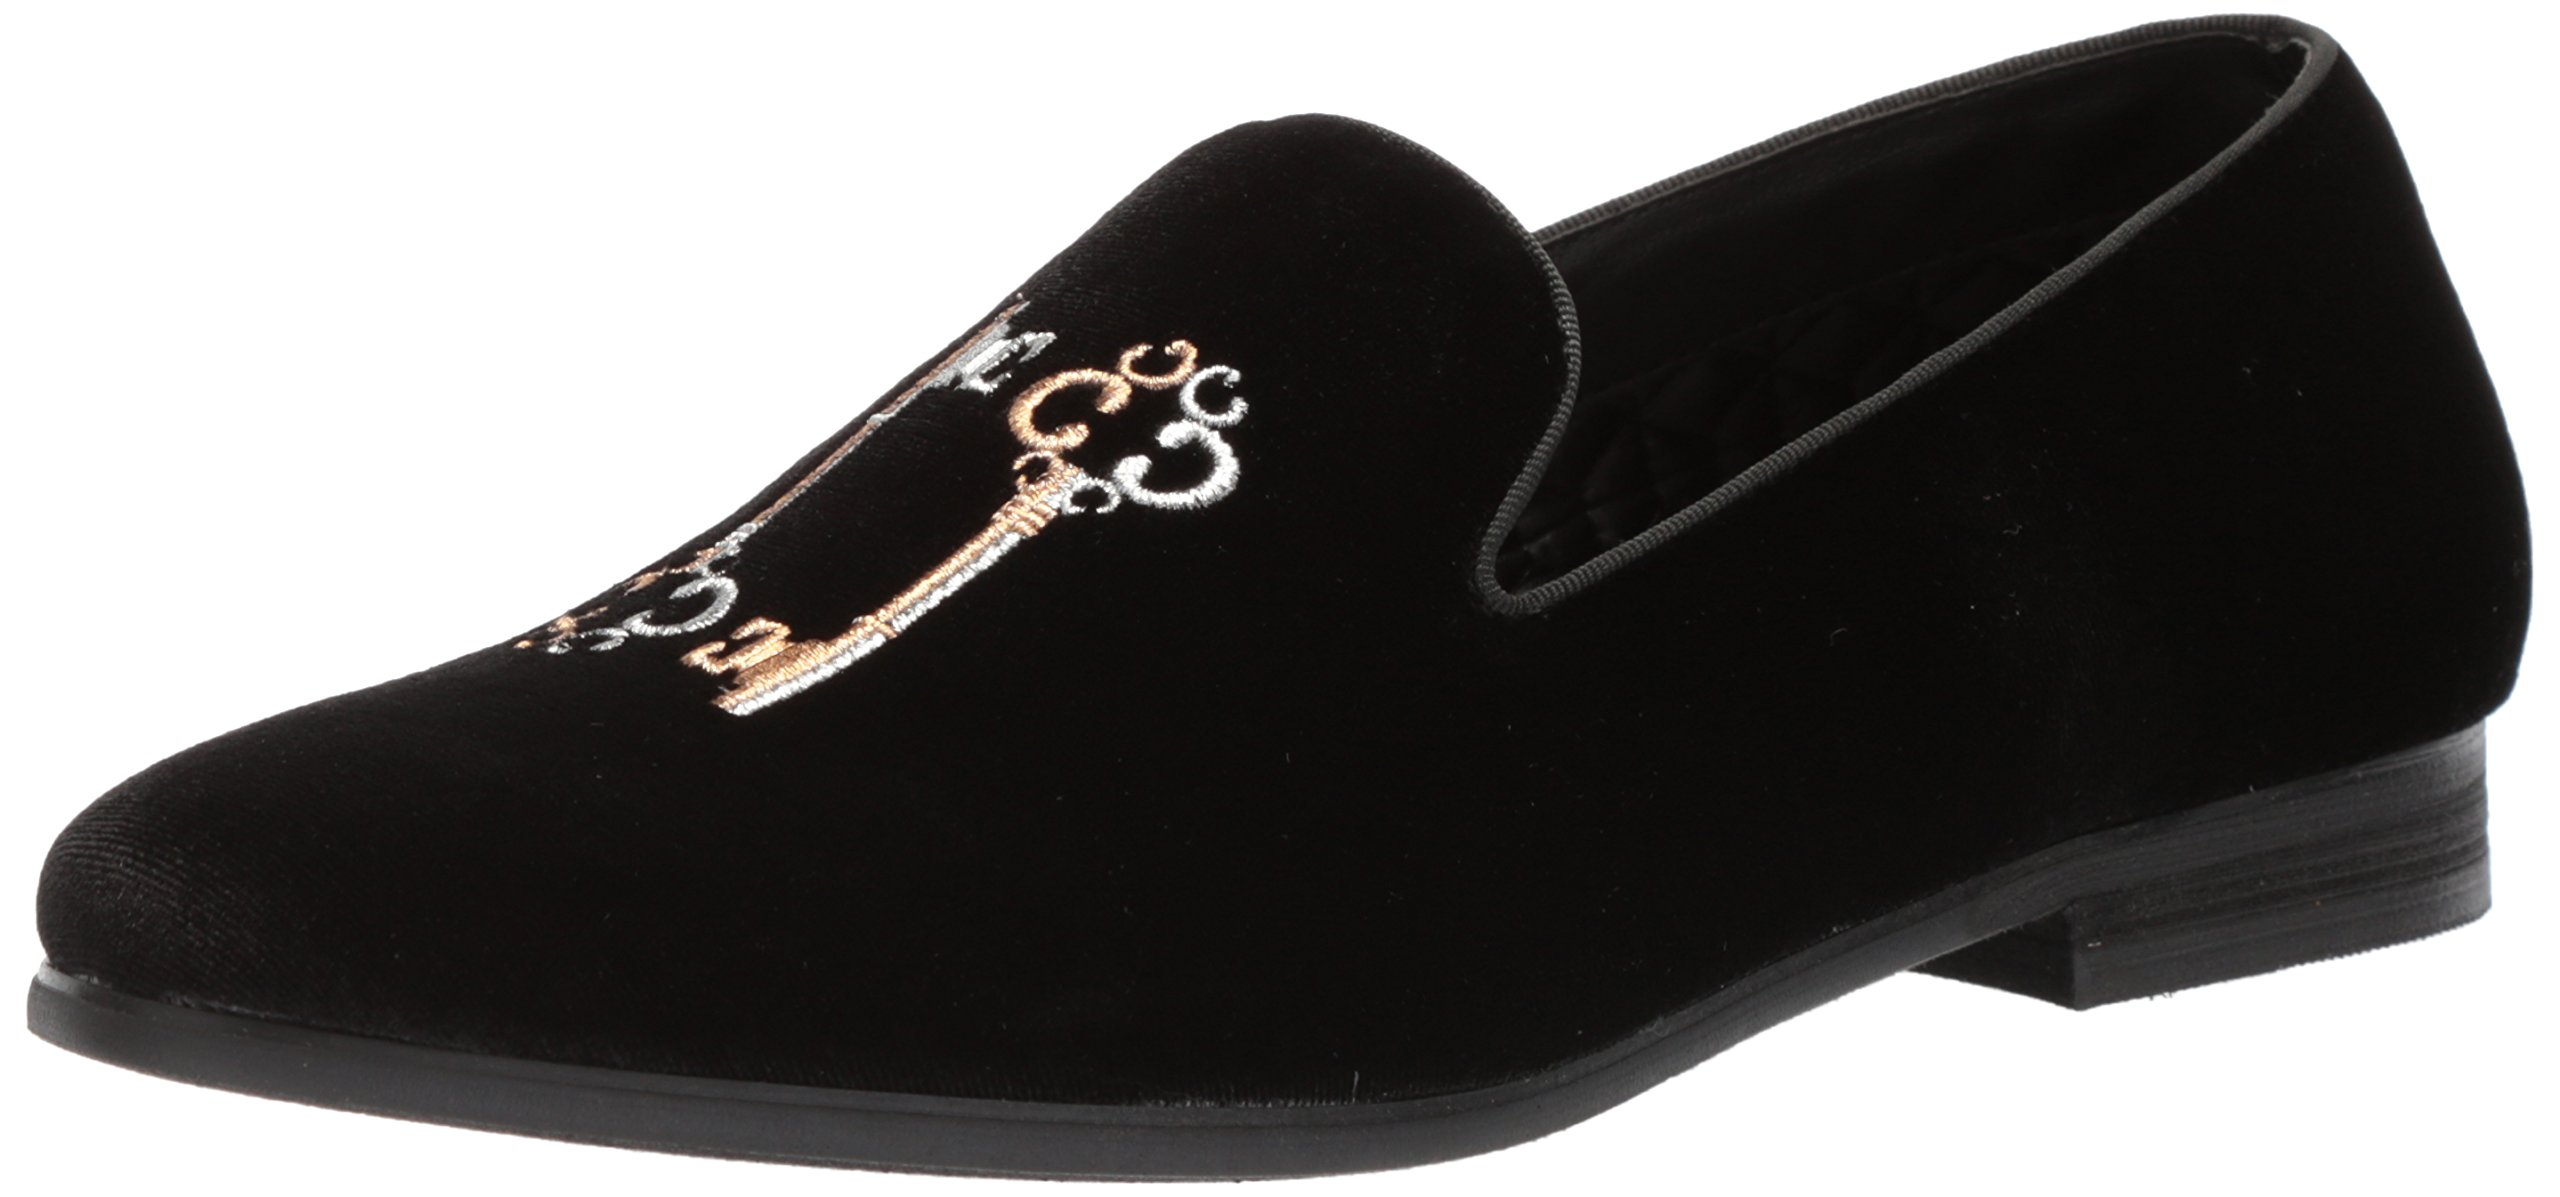 Steve Madden Men's Clues Loafer, Black Velvet, 10.5 M US